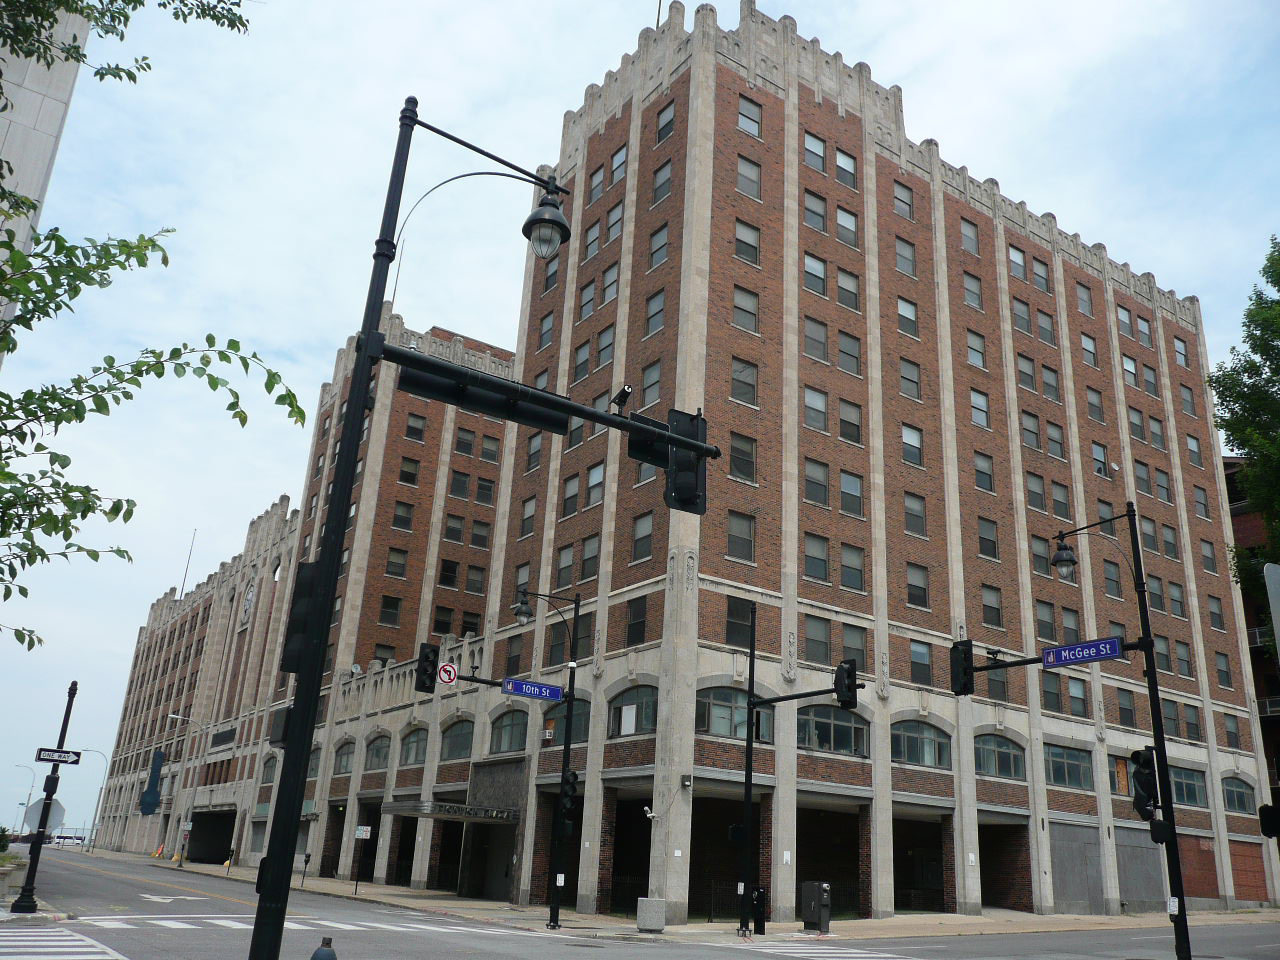 The former Pickwick Hotel building was built in 1930 during a construction boom in Kansas City. Image obtained from Wikimedia.